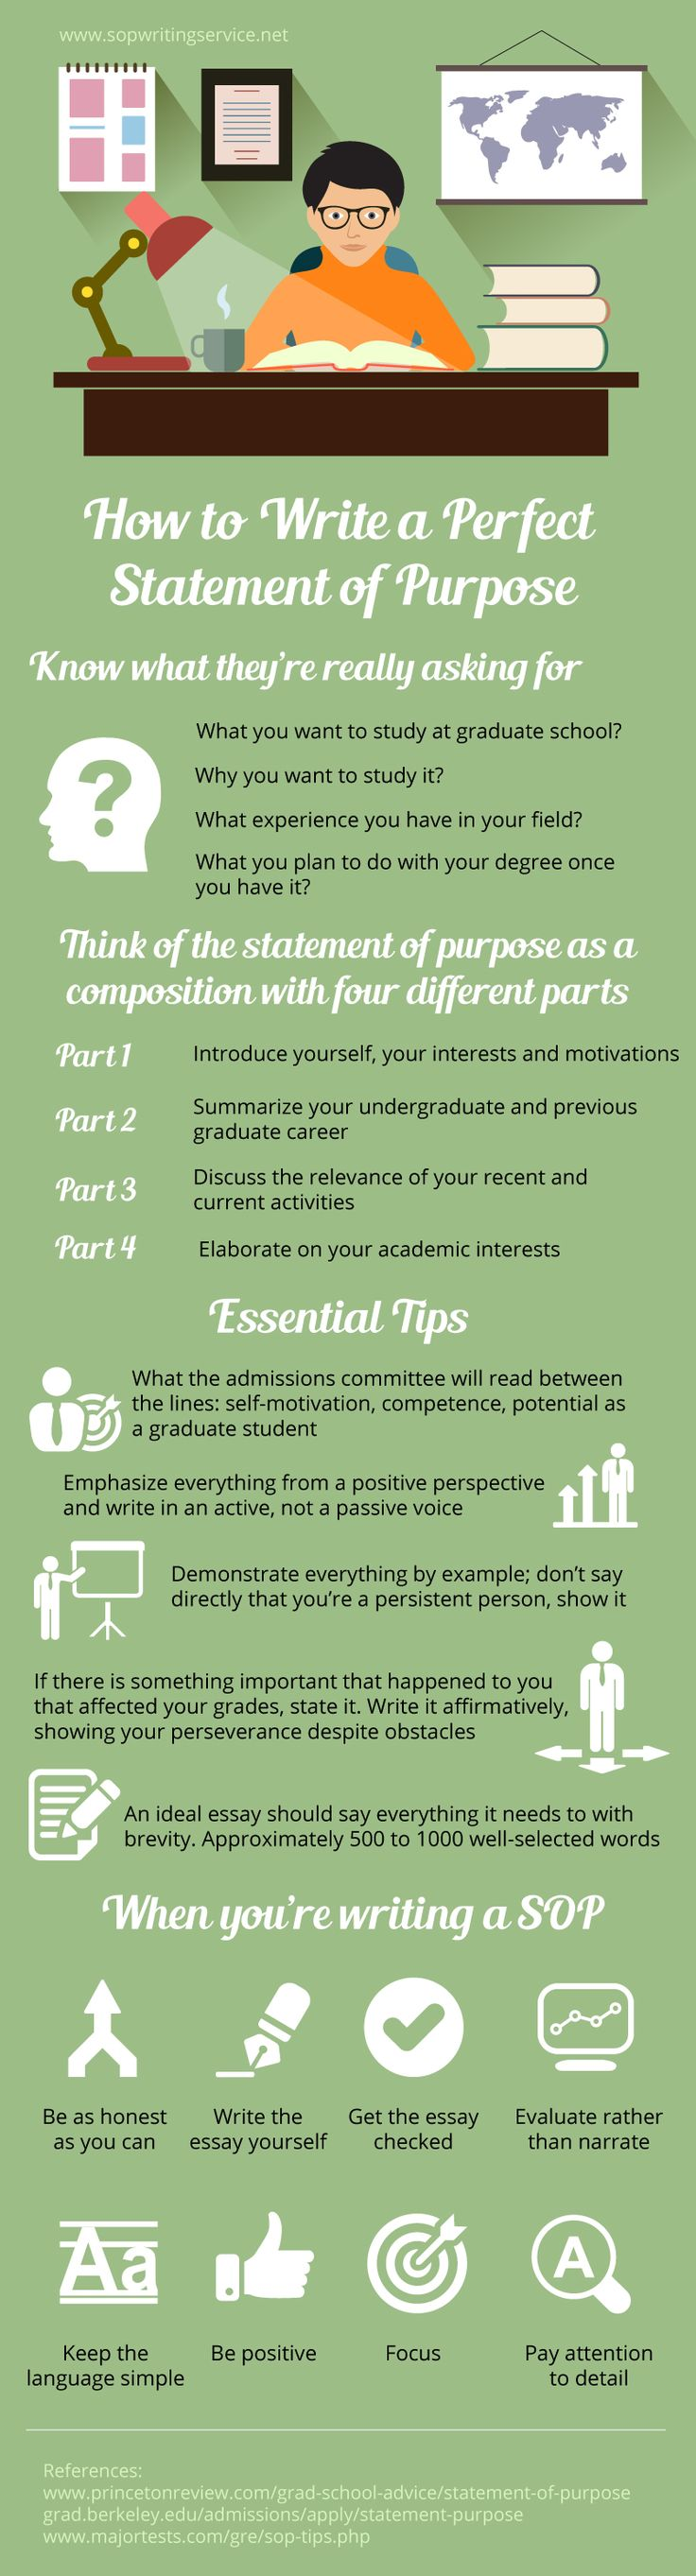 best ideas about purpose statement graduate this infographic presentation presents on how to write a perfect statement of purpose to get more details please today on this link